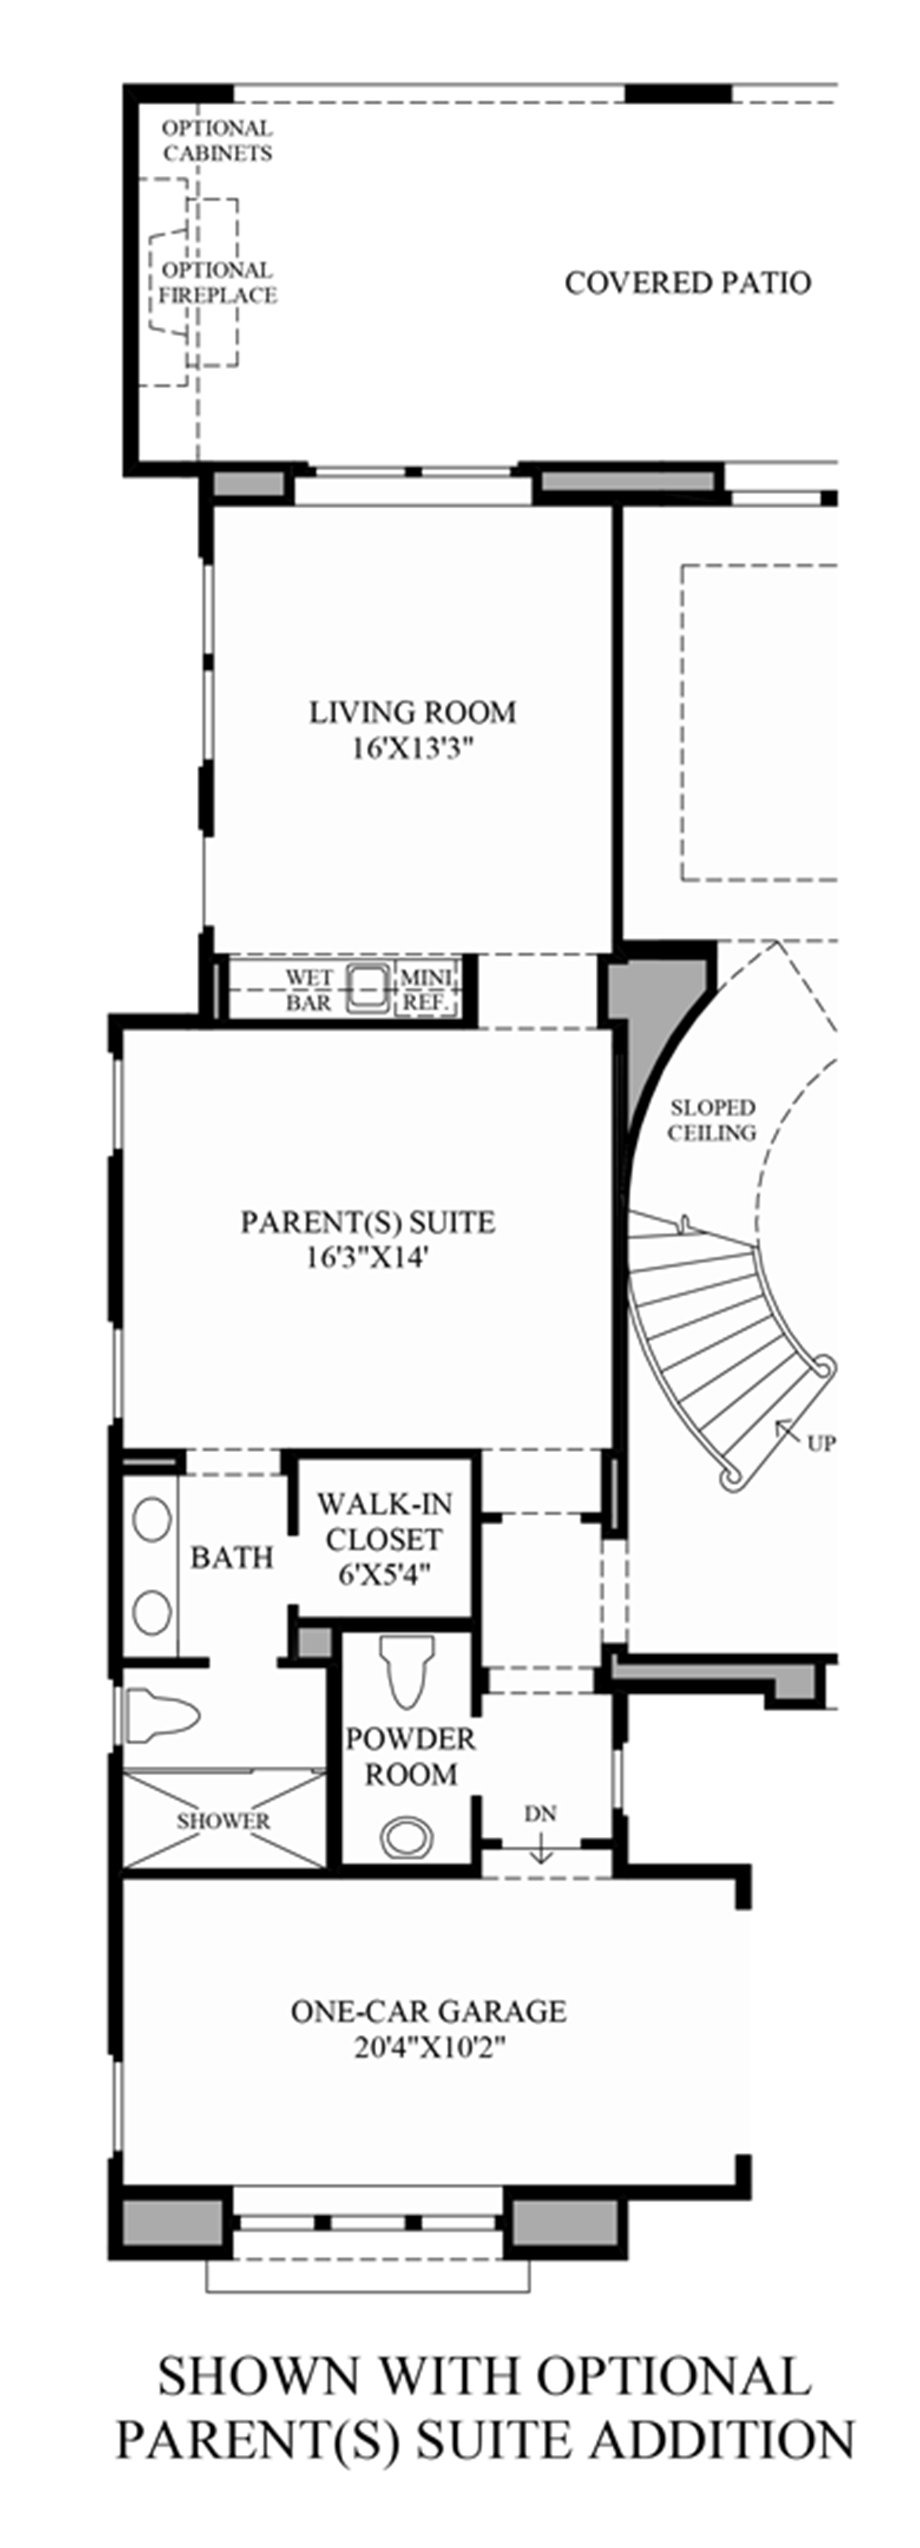 Optional Parent(s) Suite Addition Floor Plan